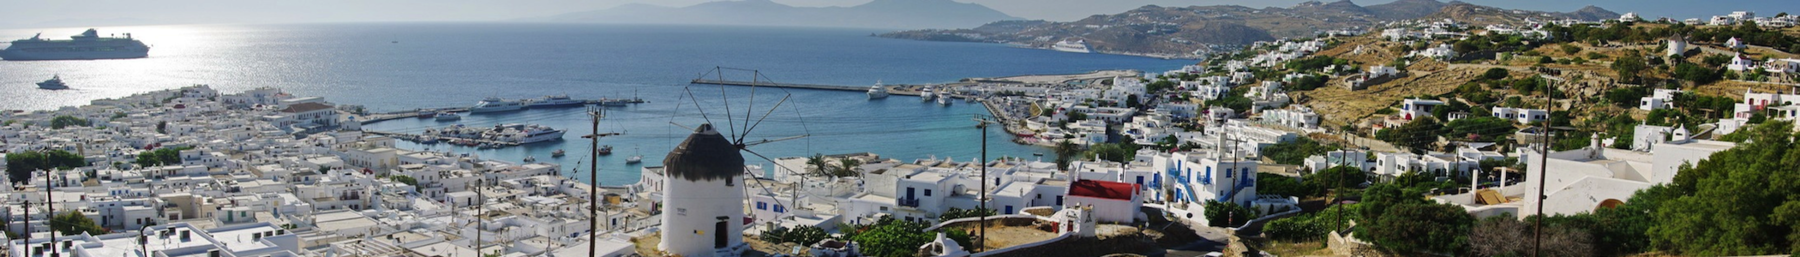 Mykonos Wikivoyage Banner.png